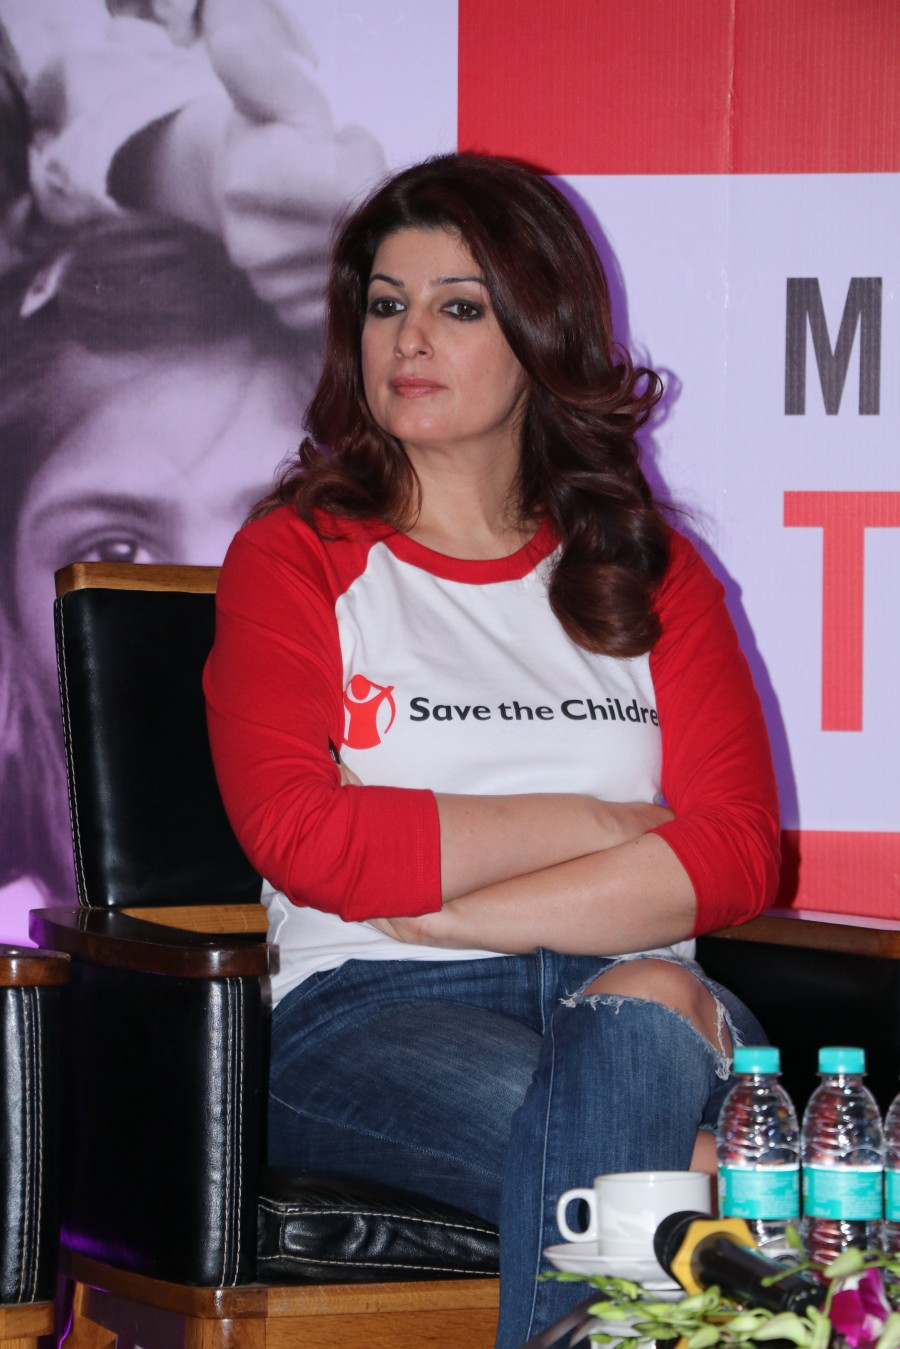 Save the children,Save the Children India,Hygiene,hygiene and sanitation,Twinkle Khanna,mumbai slums,save the children Twinkle Khanna